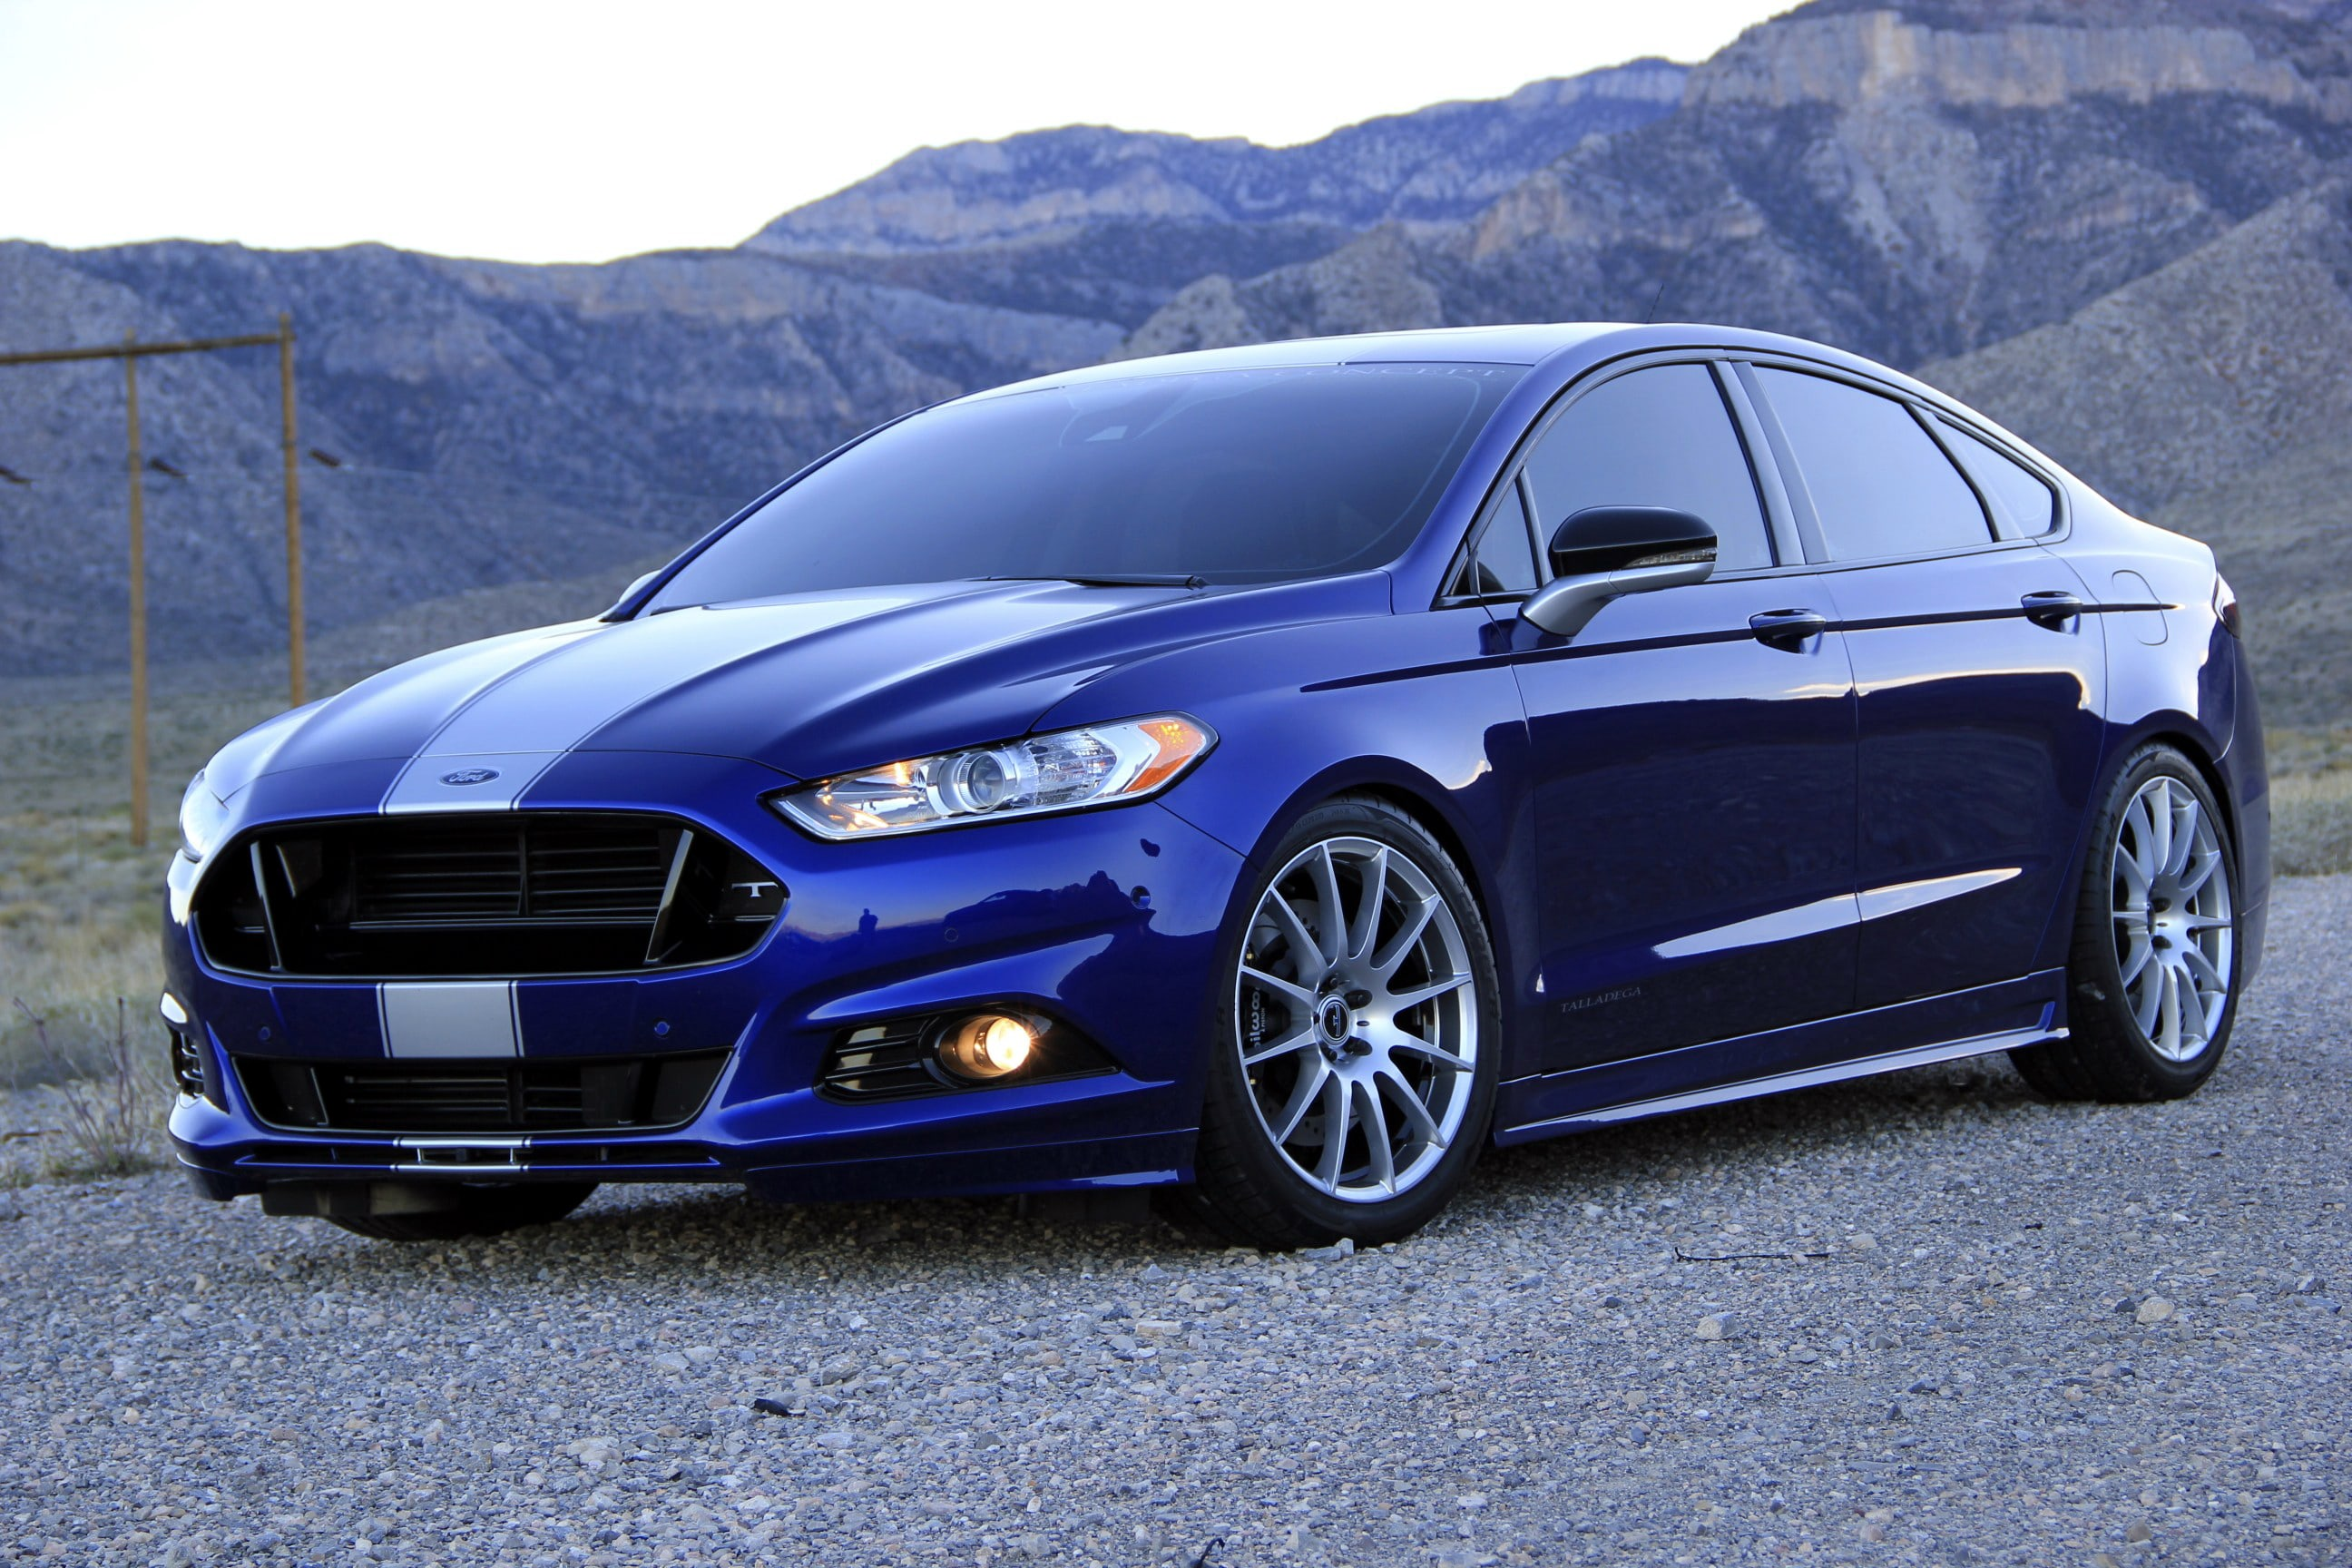 2013 Ford Fusion Widescreen for desktop